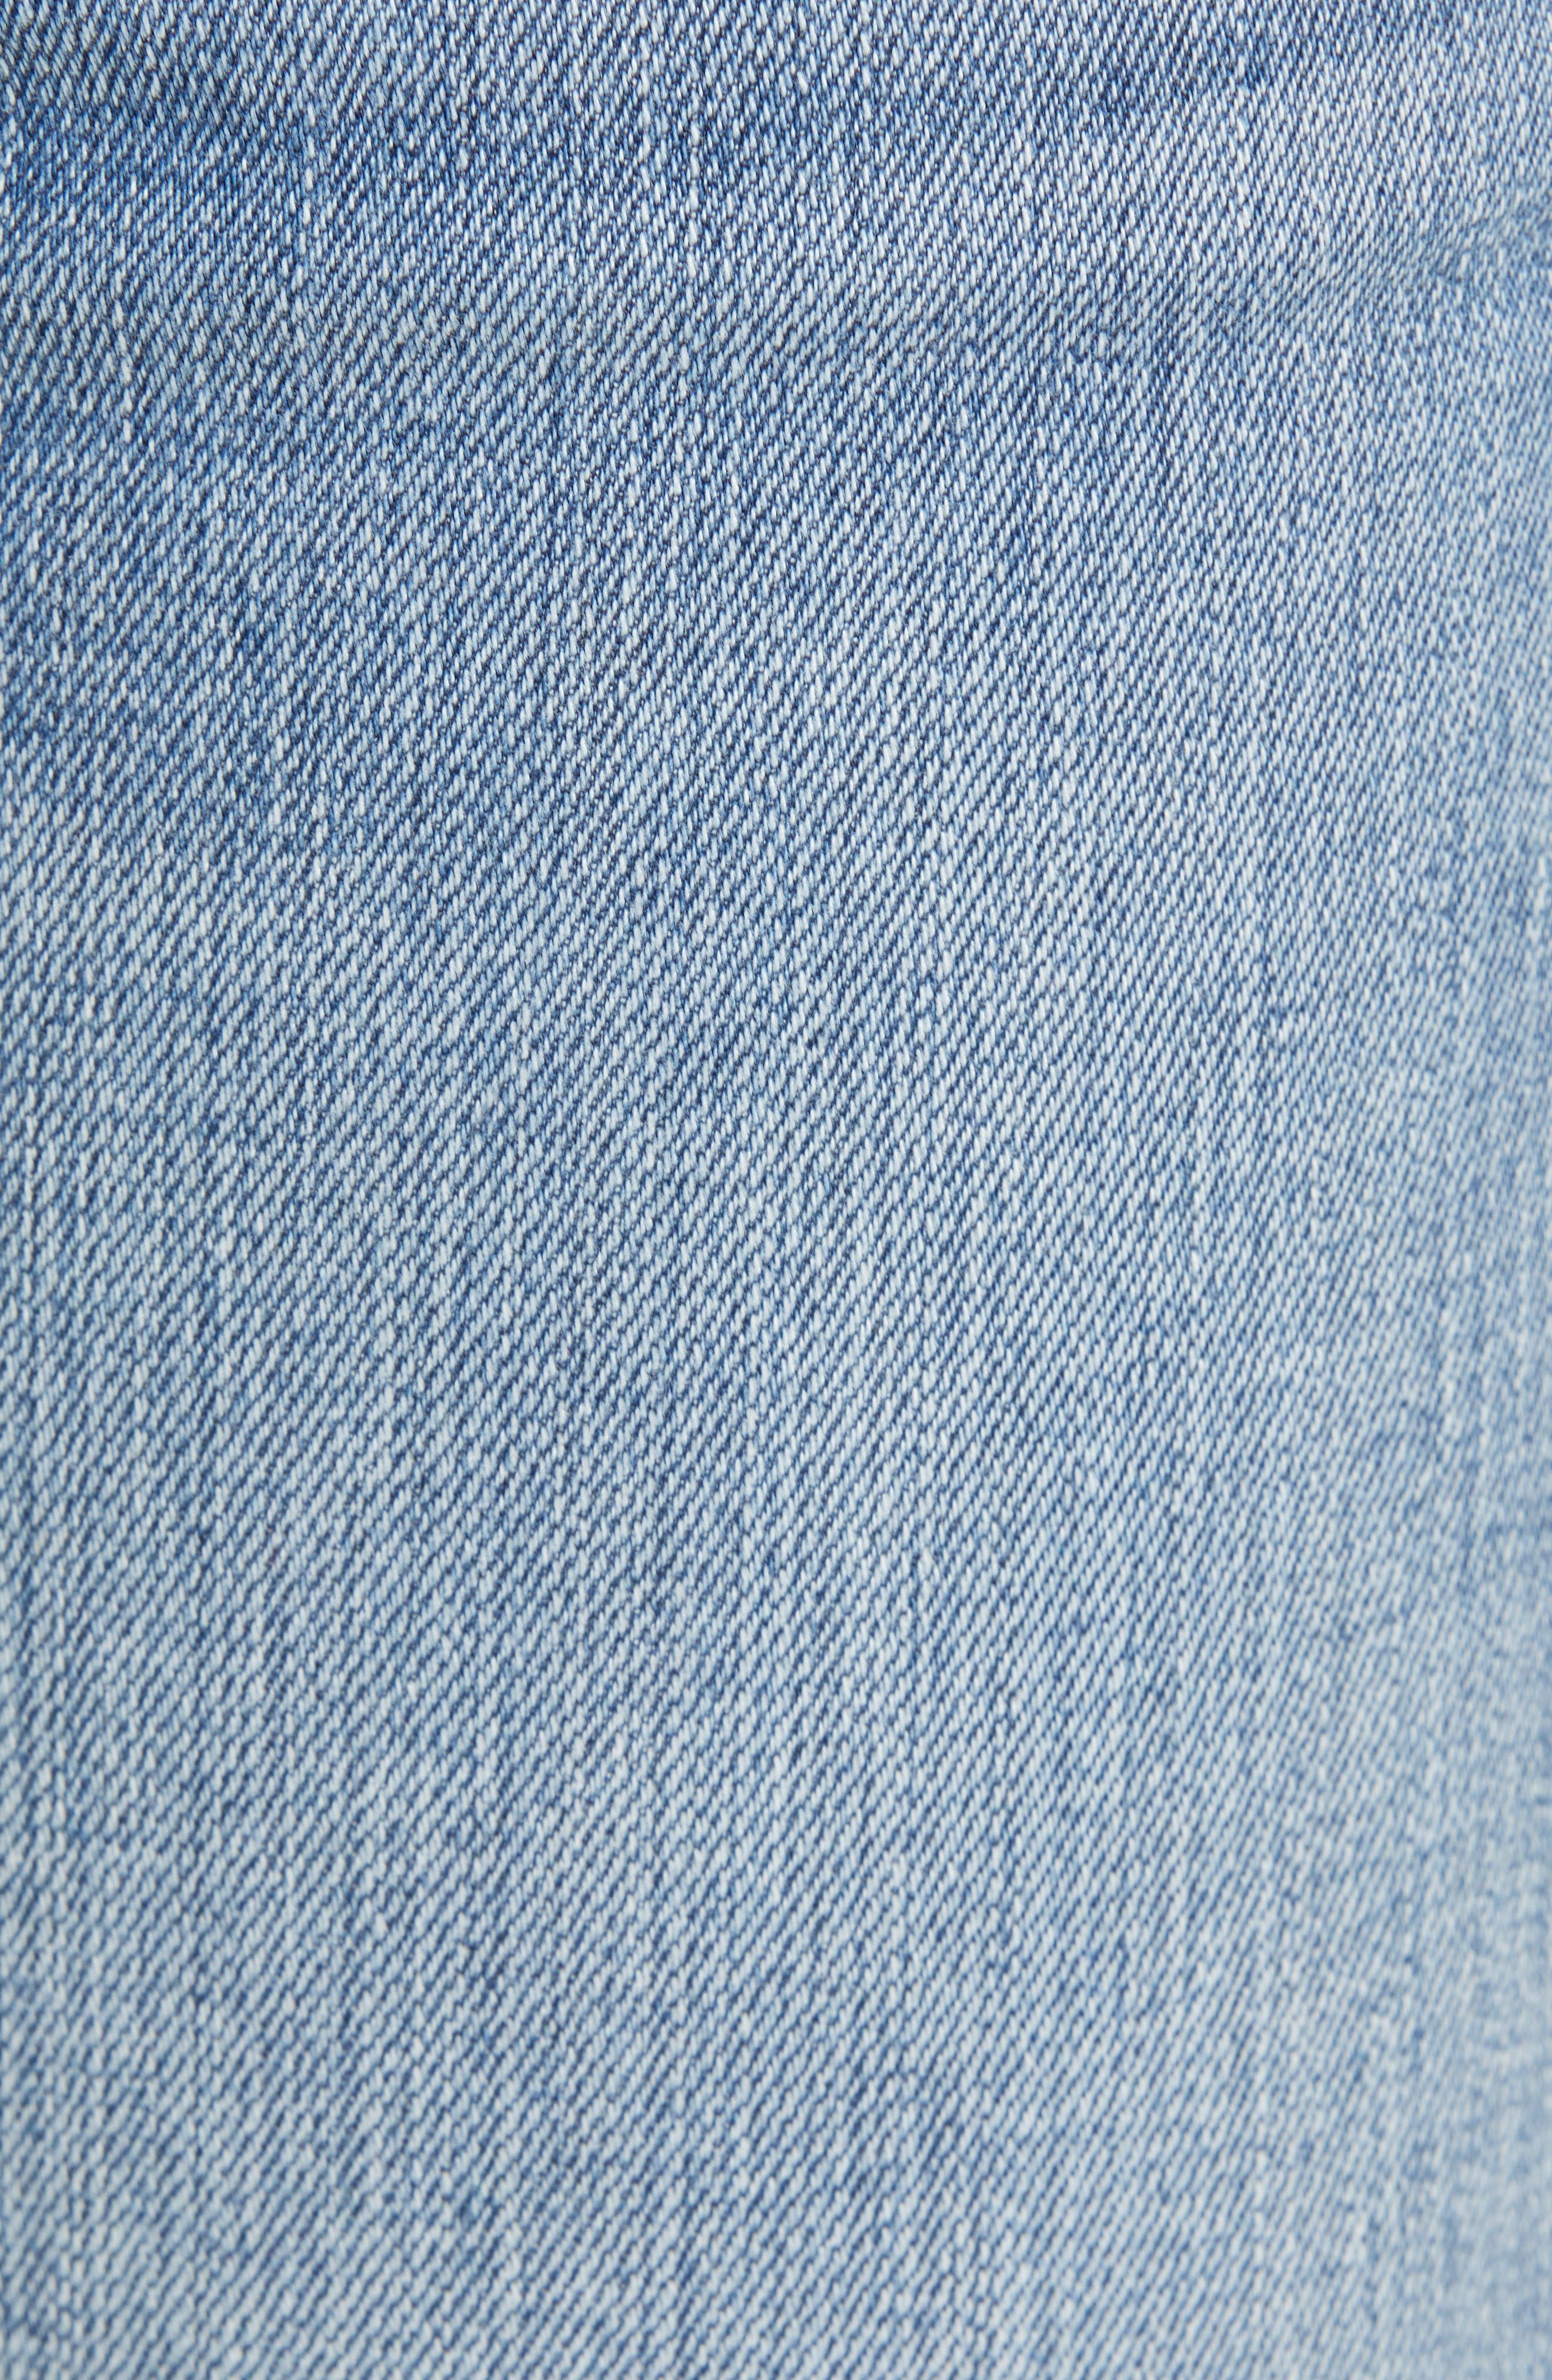 Beth Baby Bootcut Jeans,                             Alternate thumbnail 5, color,                             PREPARTY